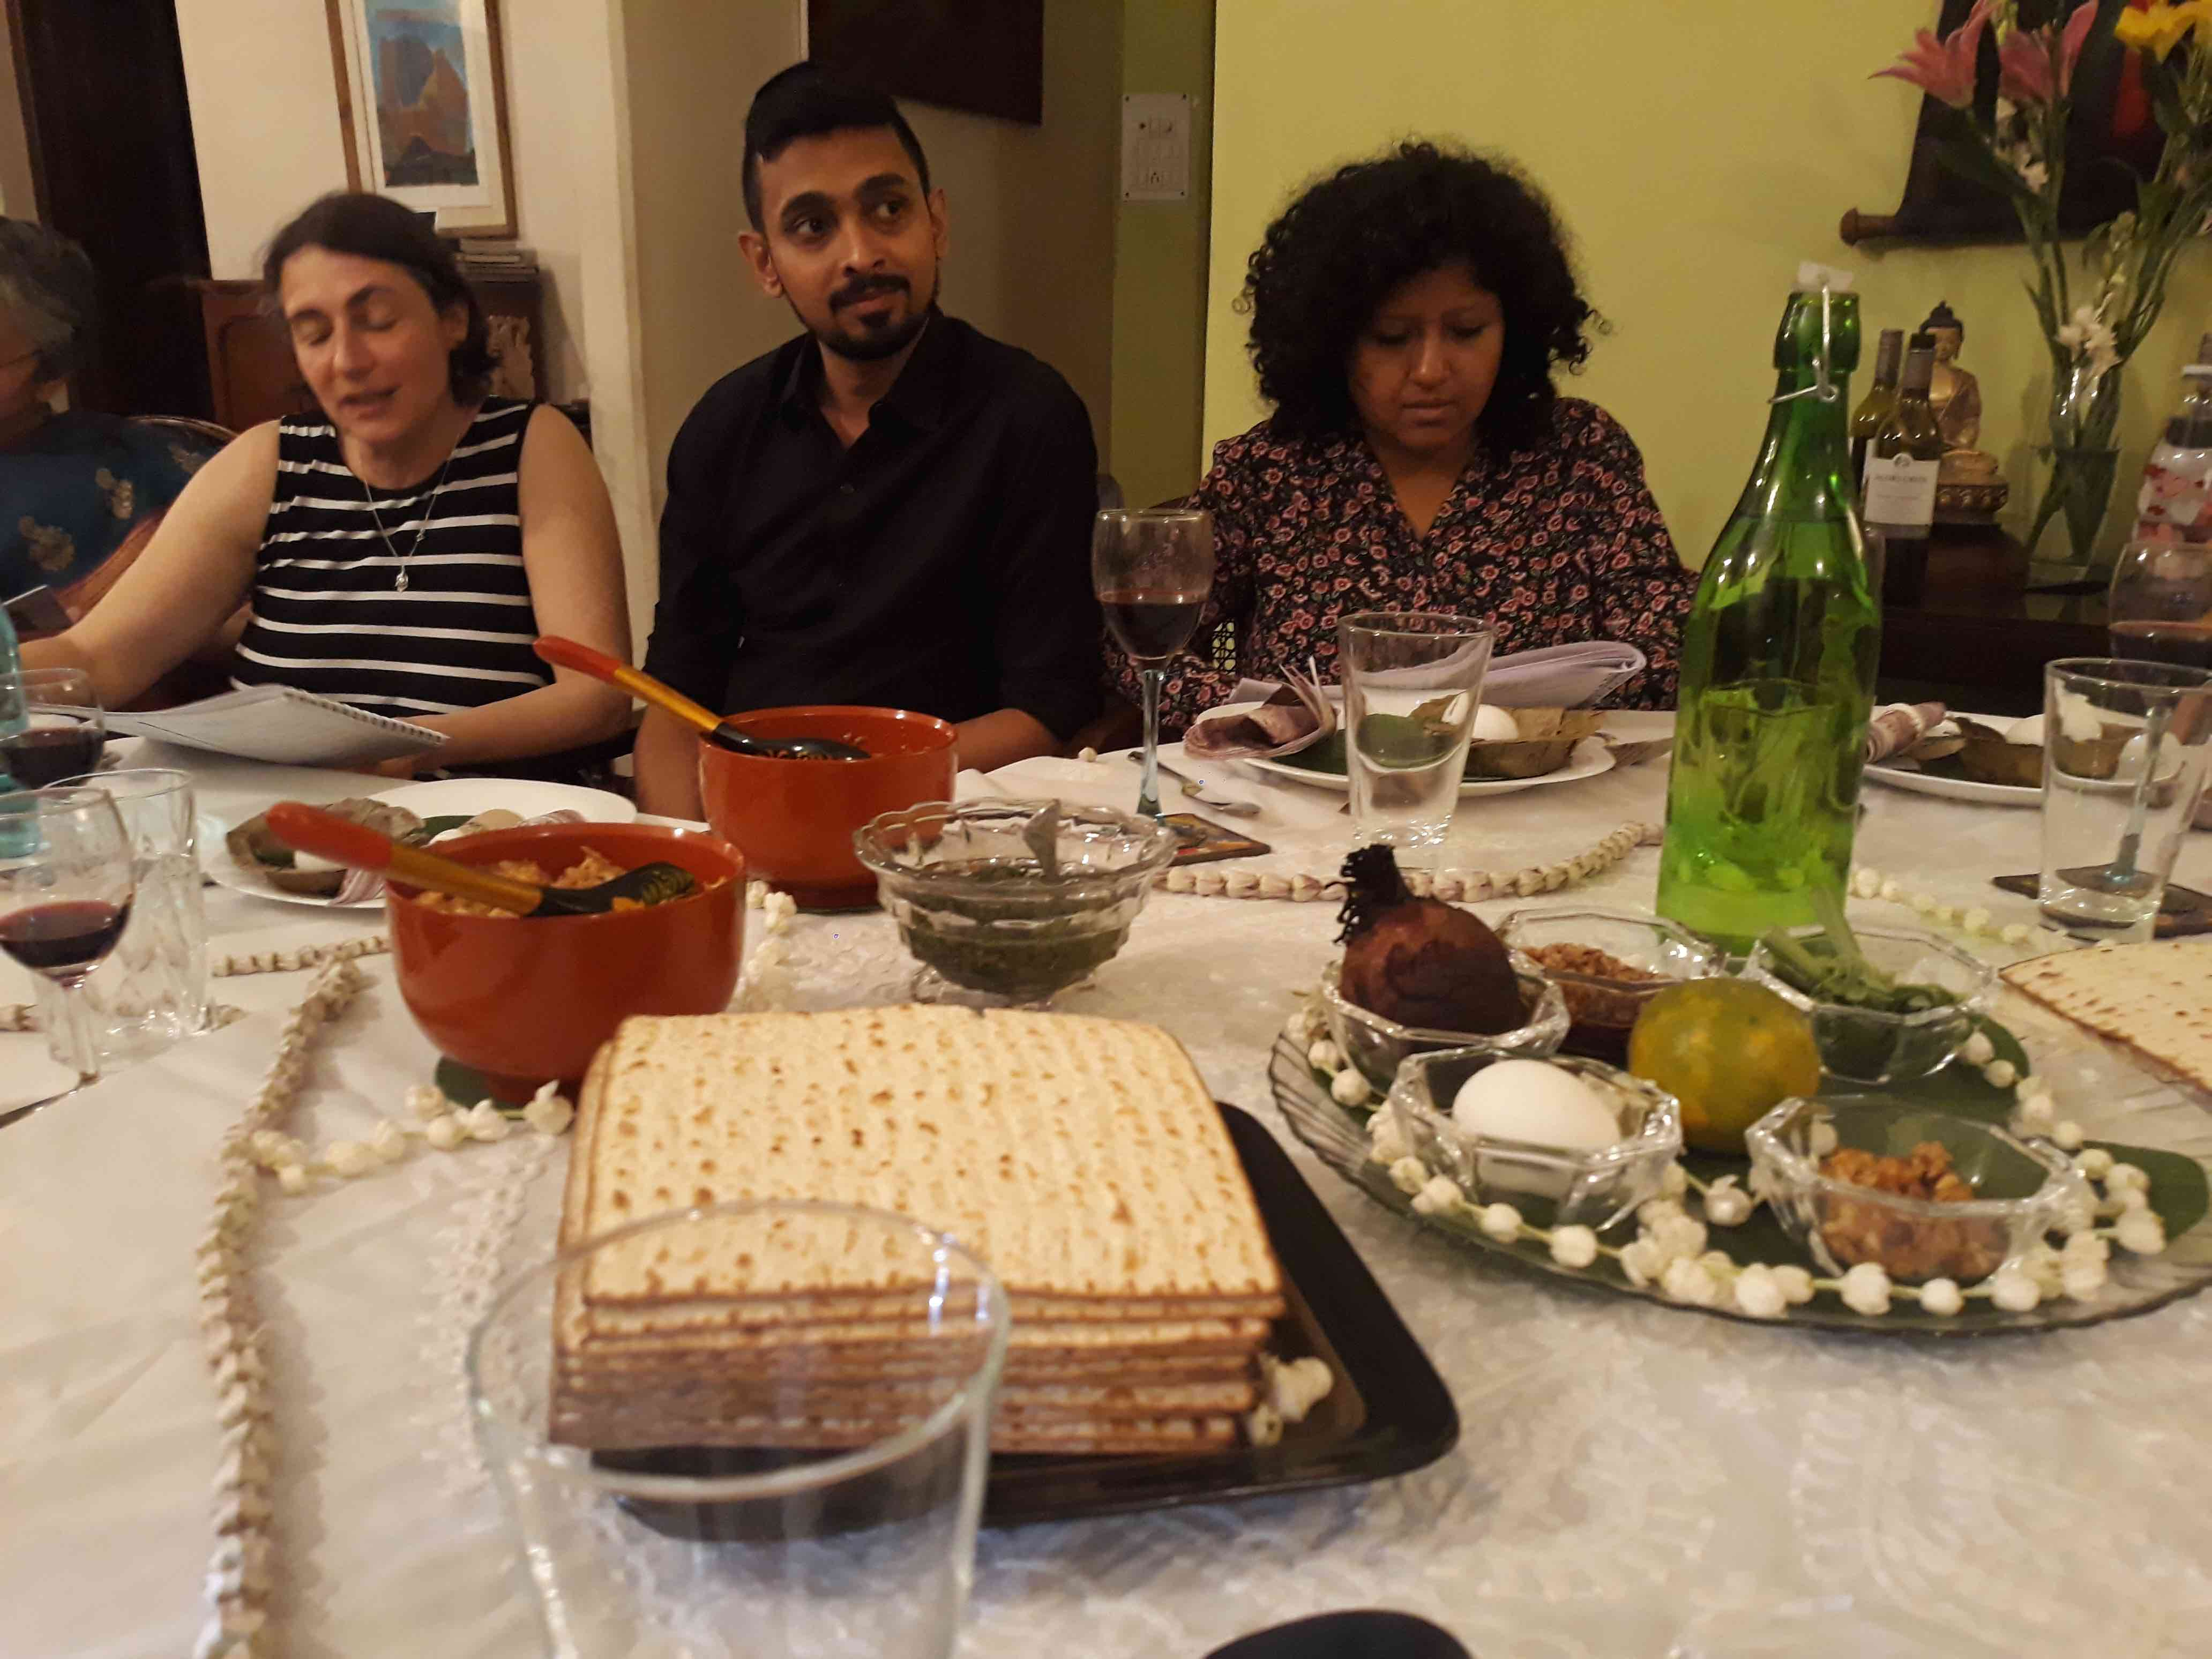 Caption: Seder plate